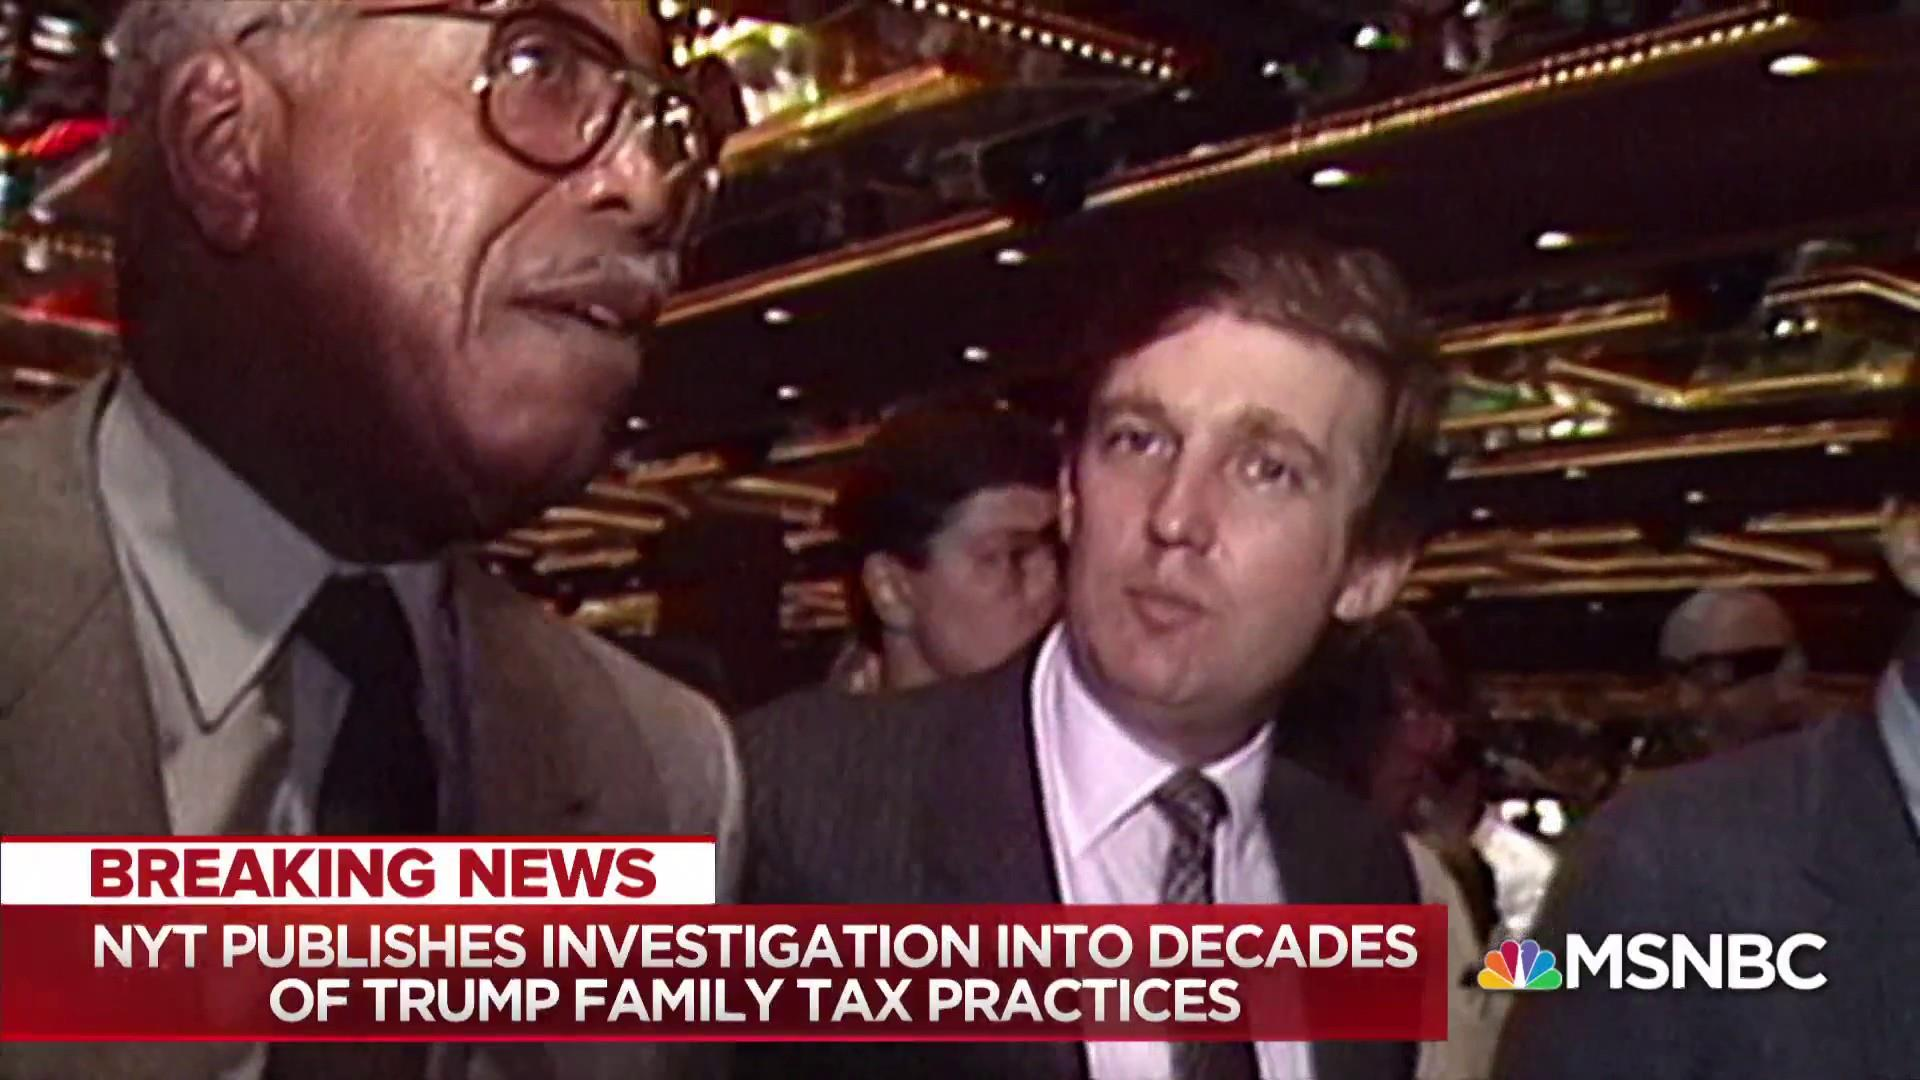 Fraud of Trump's self-made persona exposed in father's financials